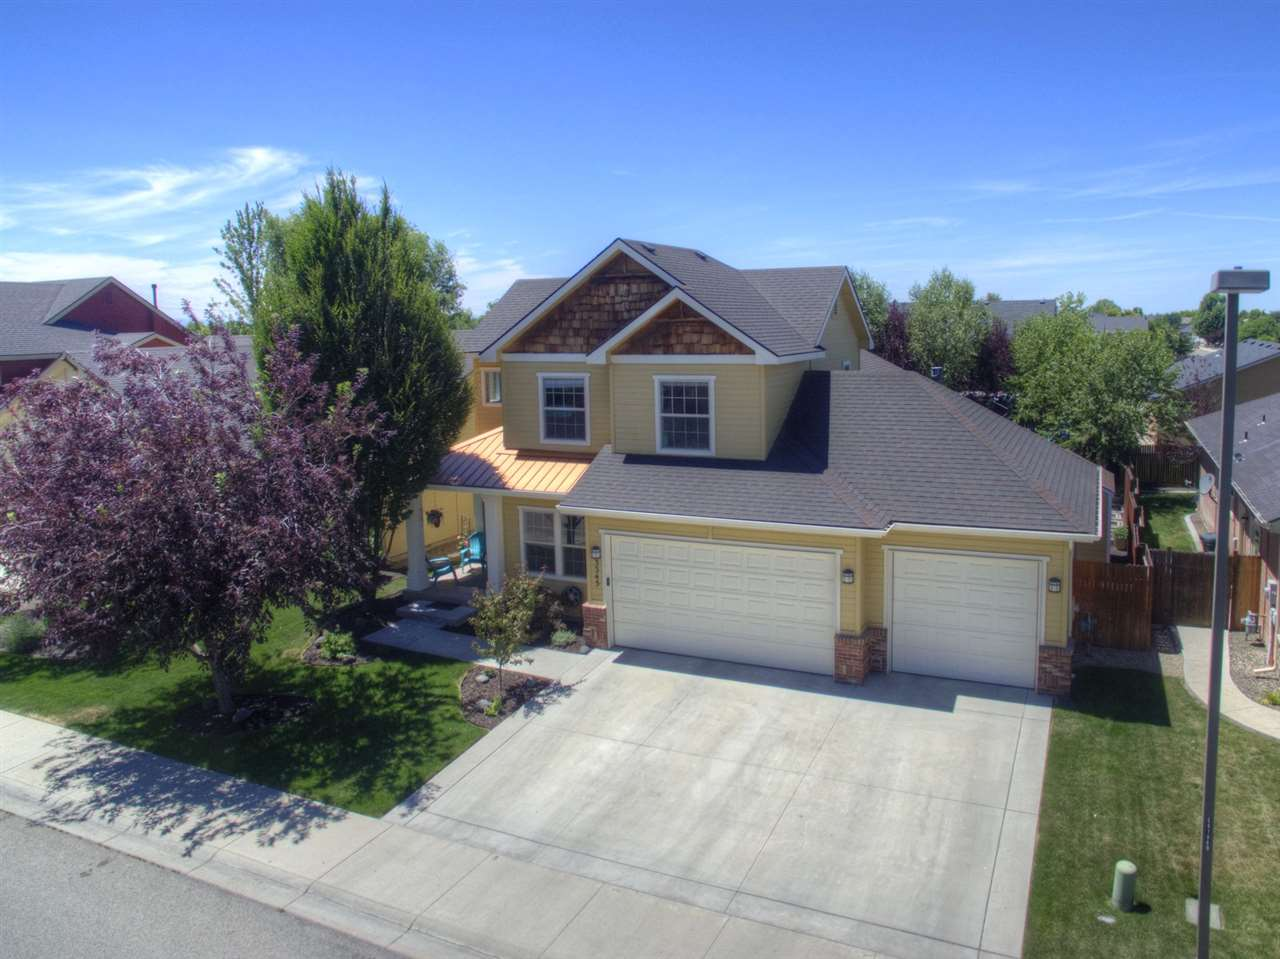 3345 Campton Way,Boise,Idaho 83713,4 Bedrooms Bedrooms,2.5 BathroomsBathrooms,Rental,3345 Campton Way,98674807